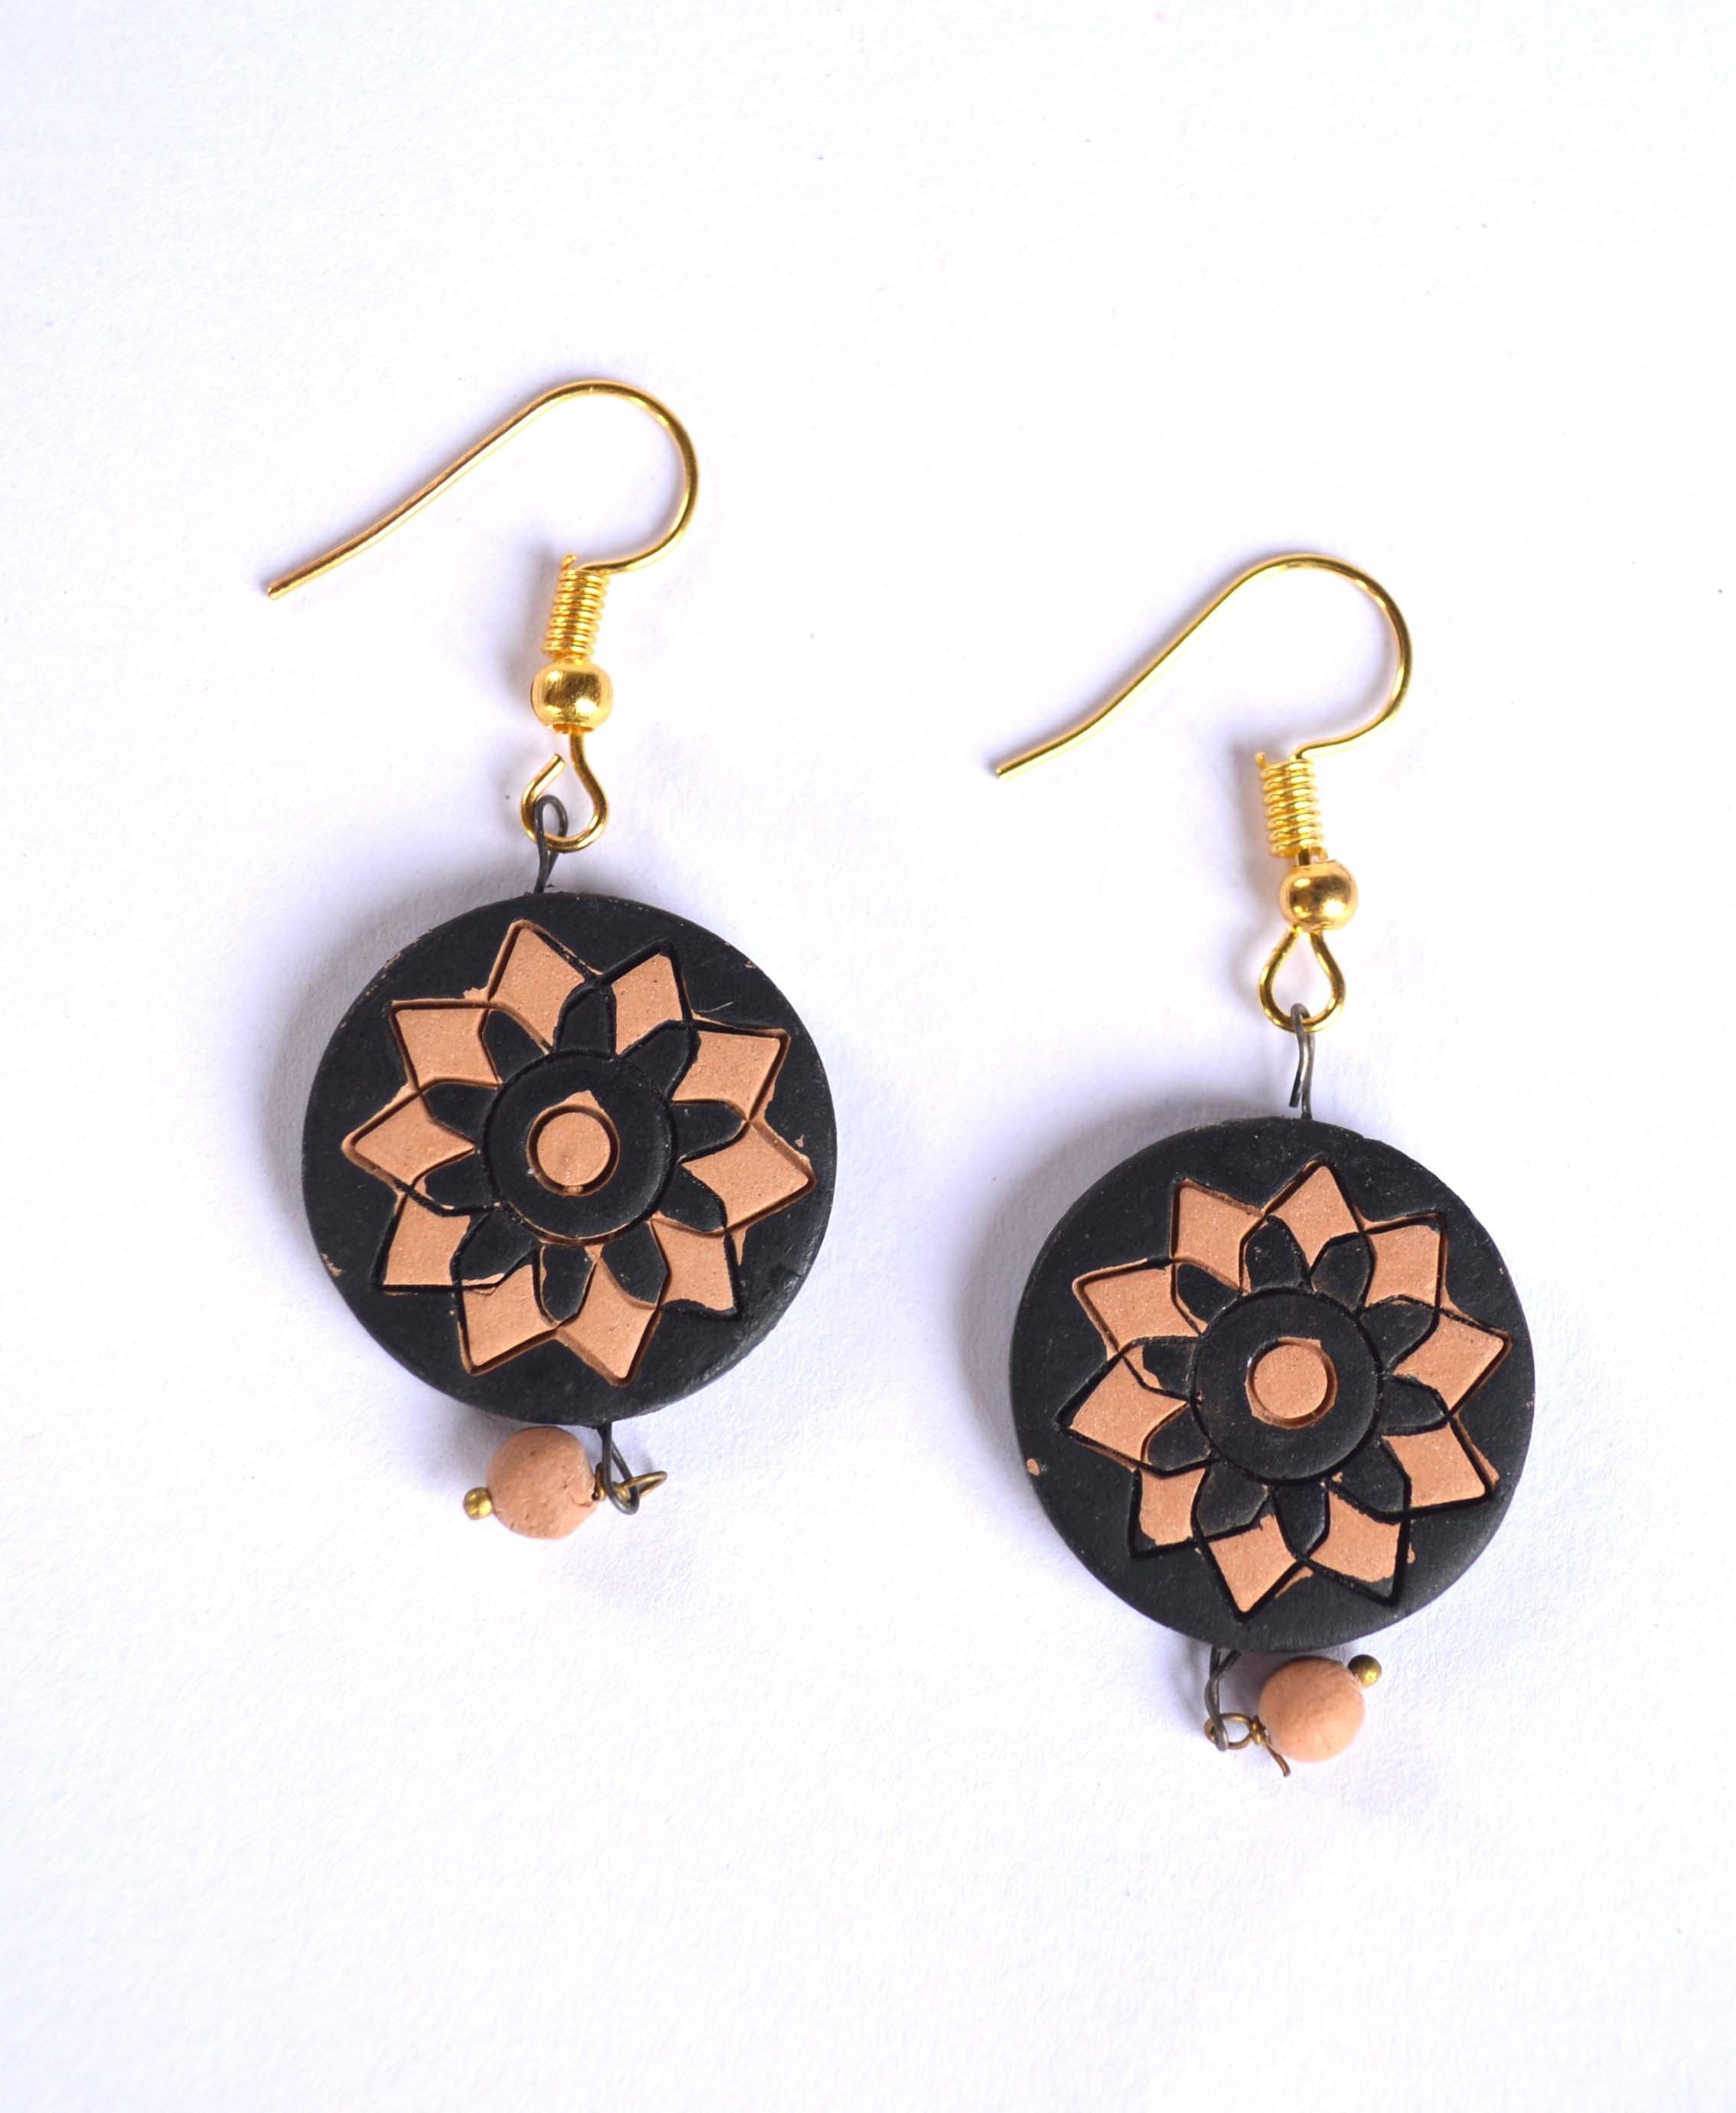 products earrings tatas bulletin jewellery handmade